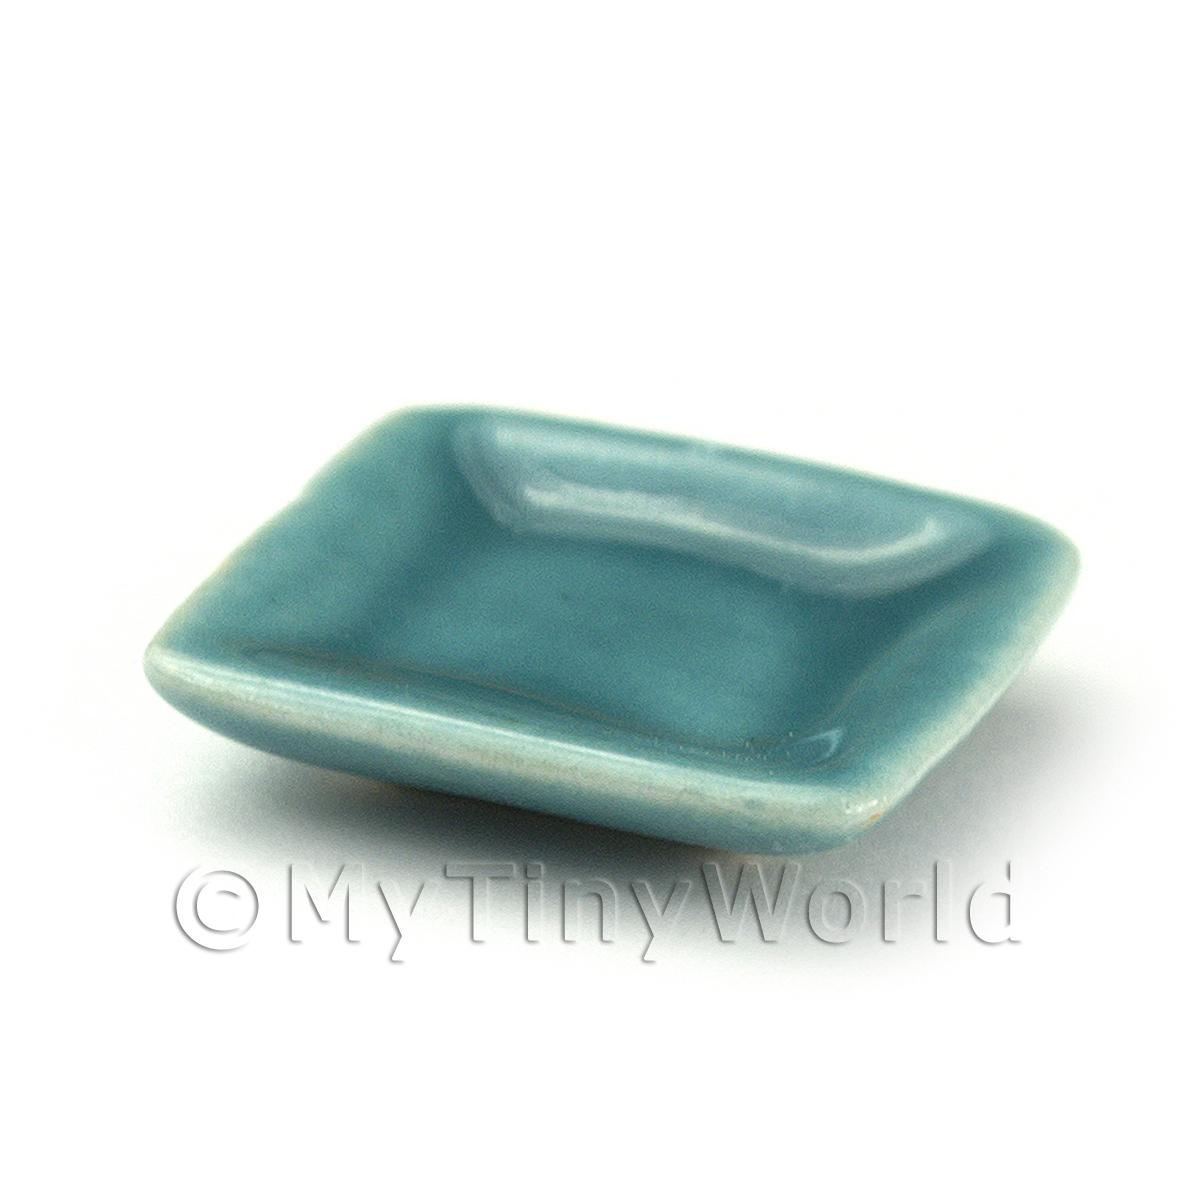 Dolls House 20mm Aquamarine Ceramic Square Plate